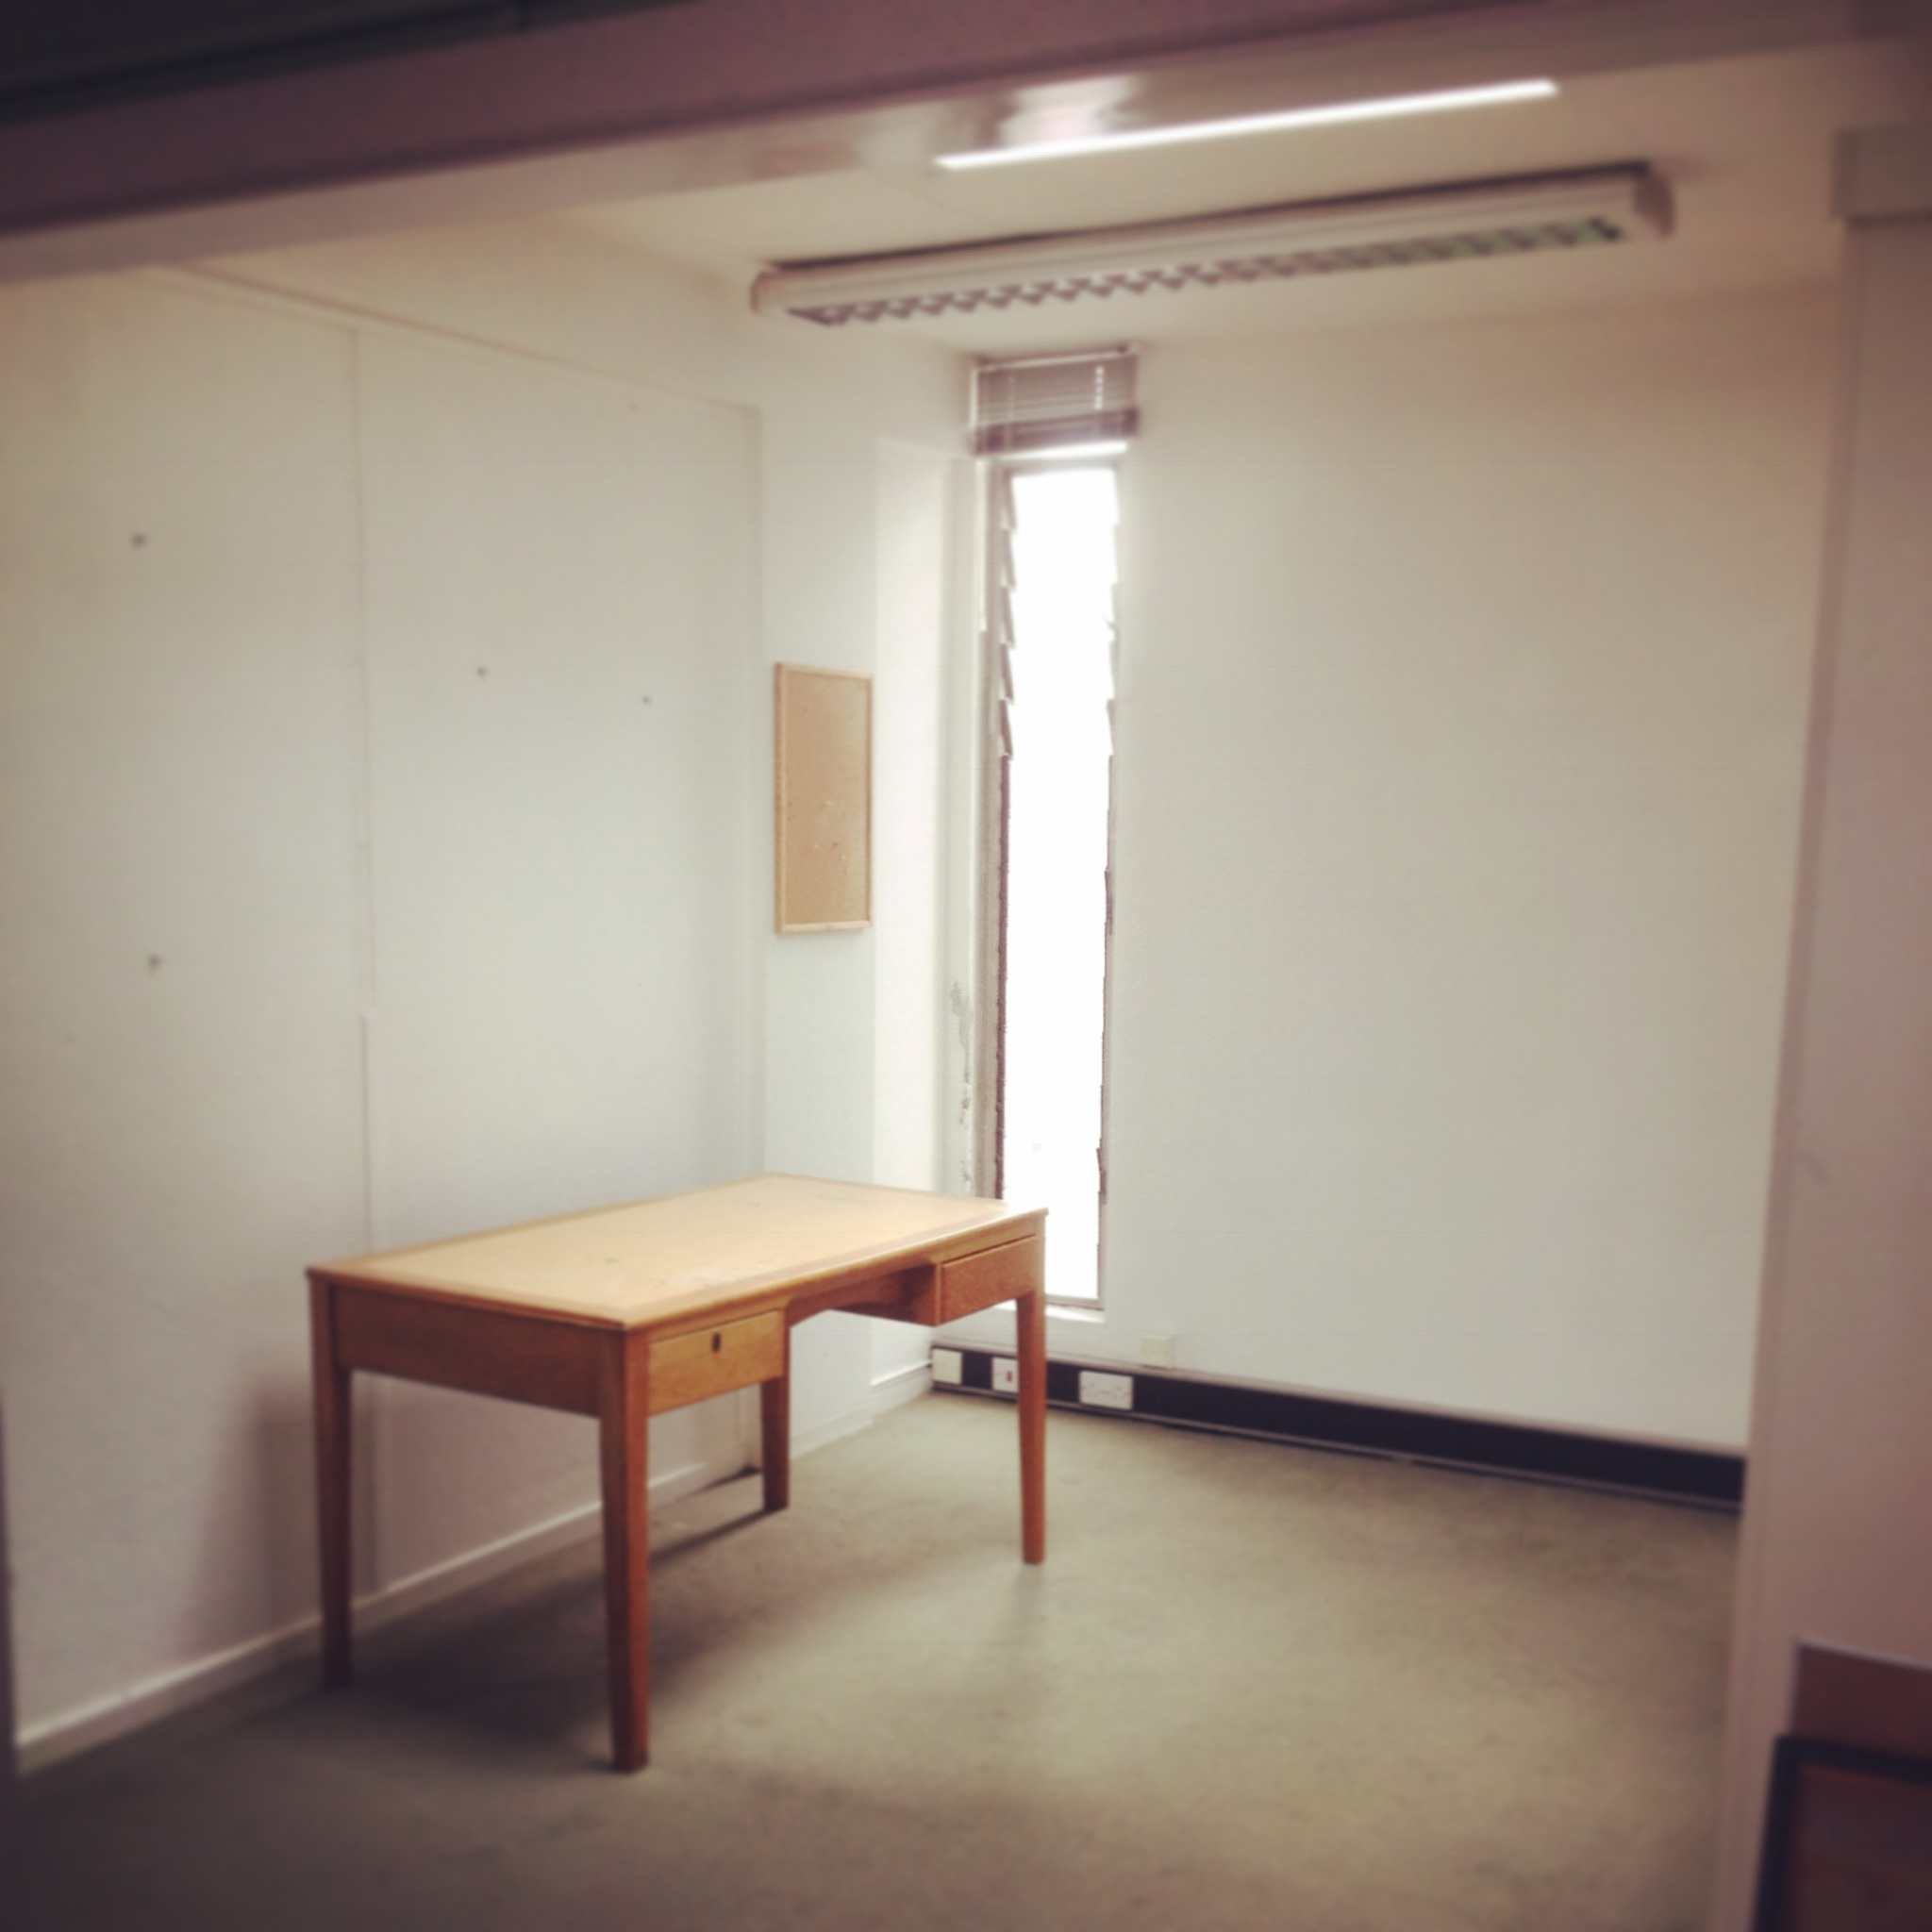 Studio Available - Top Floor , Open plan studio space available£155 per calendar monthIncludes Wifi, Rates, Water, Electric24/7 access to your studio space.